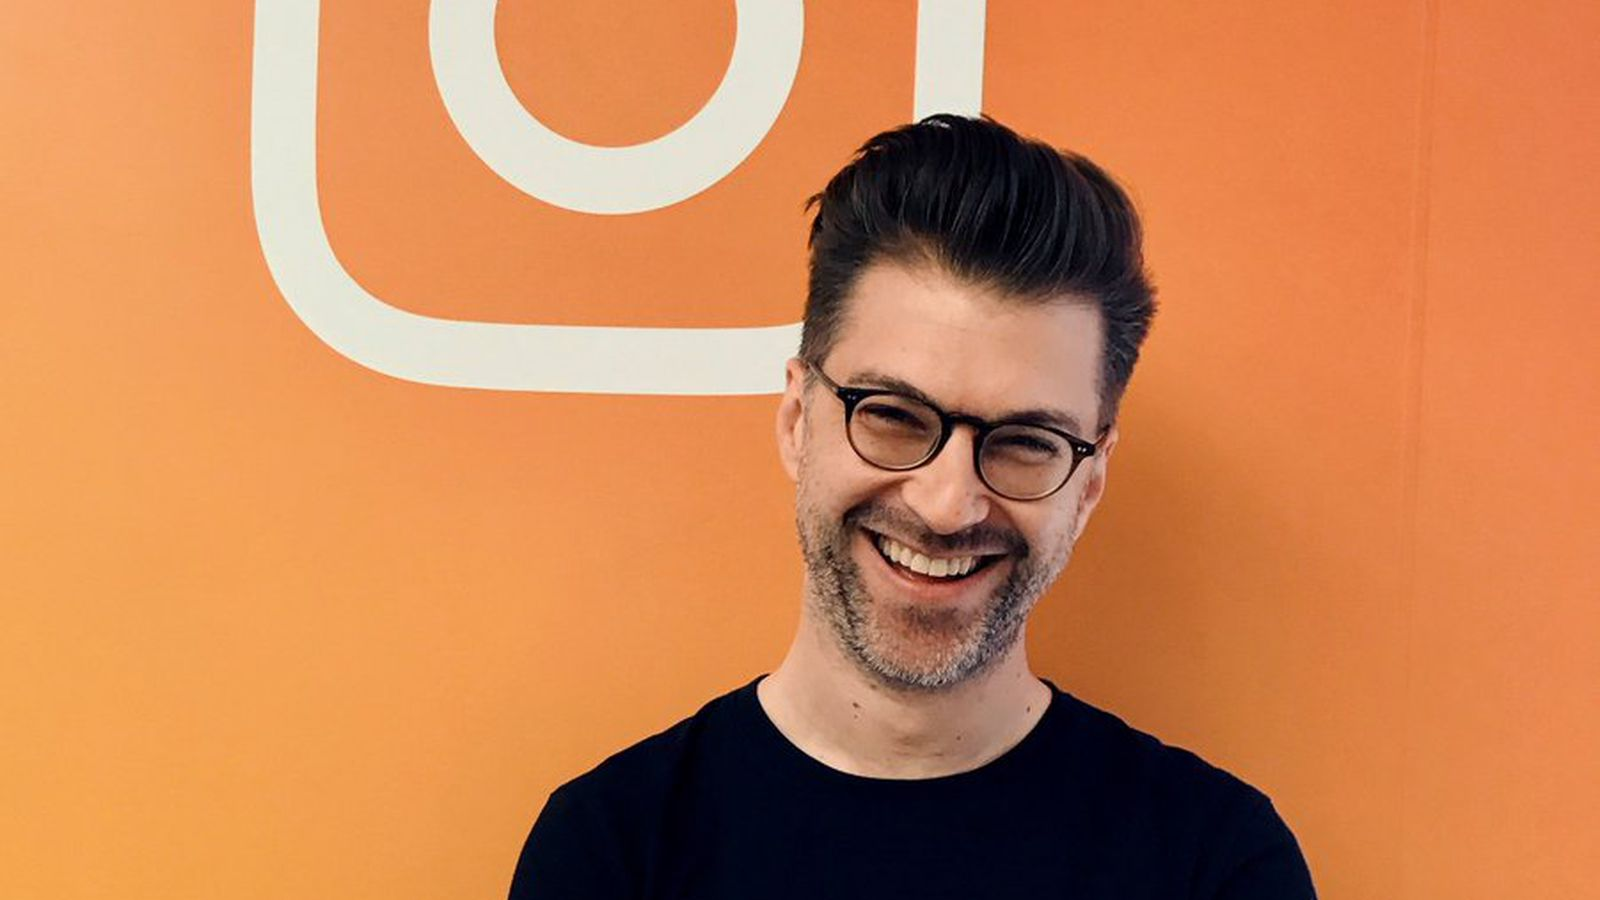 The Man Behind Spotify's Discover Weekly Feature is Going to Instagram